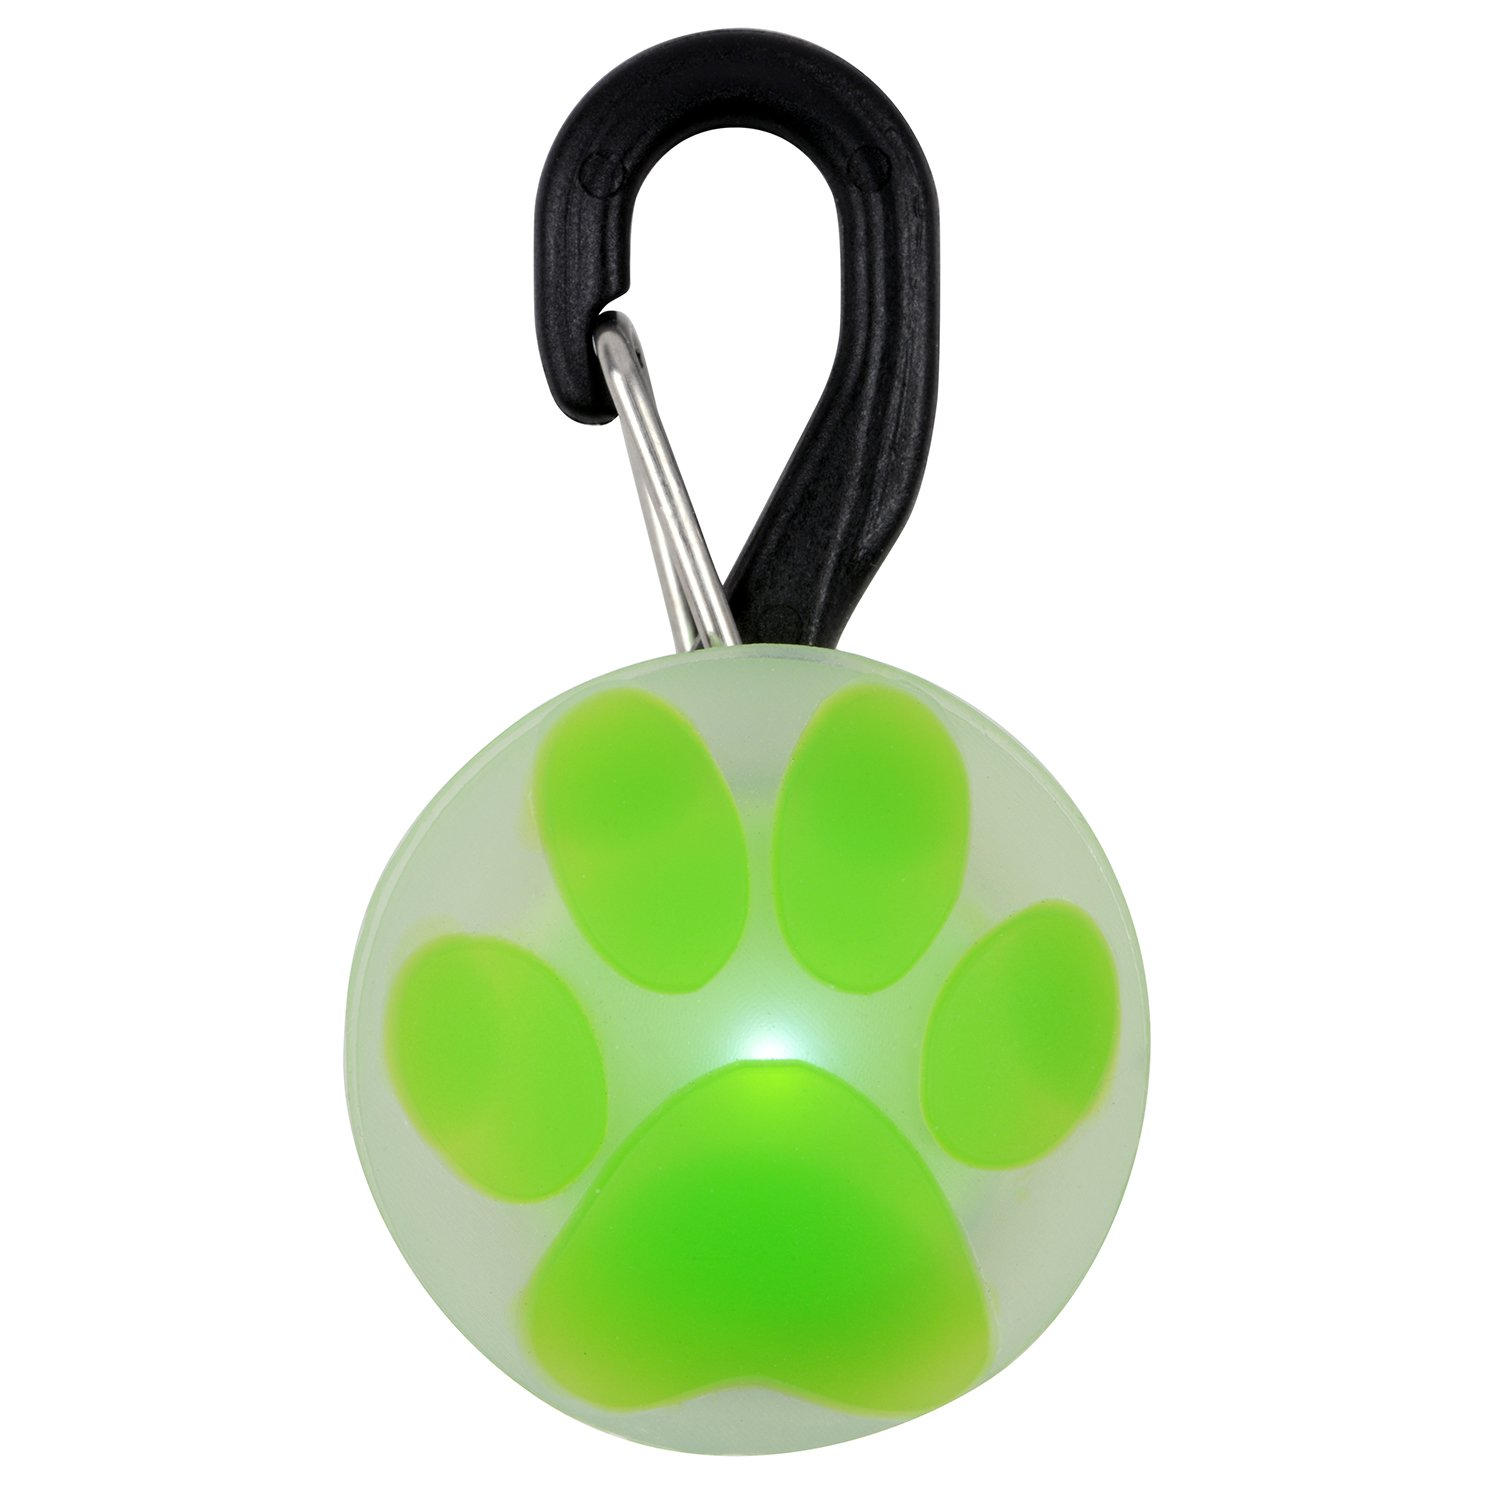 Nite Ize Innovation LED Lime Paw PetLit